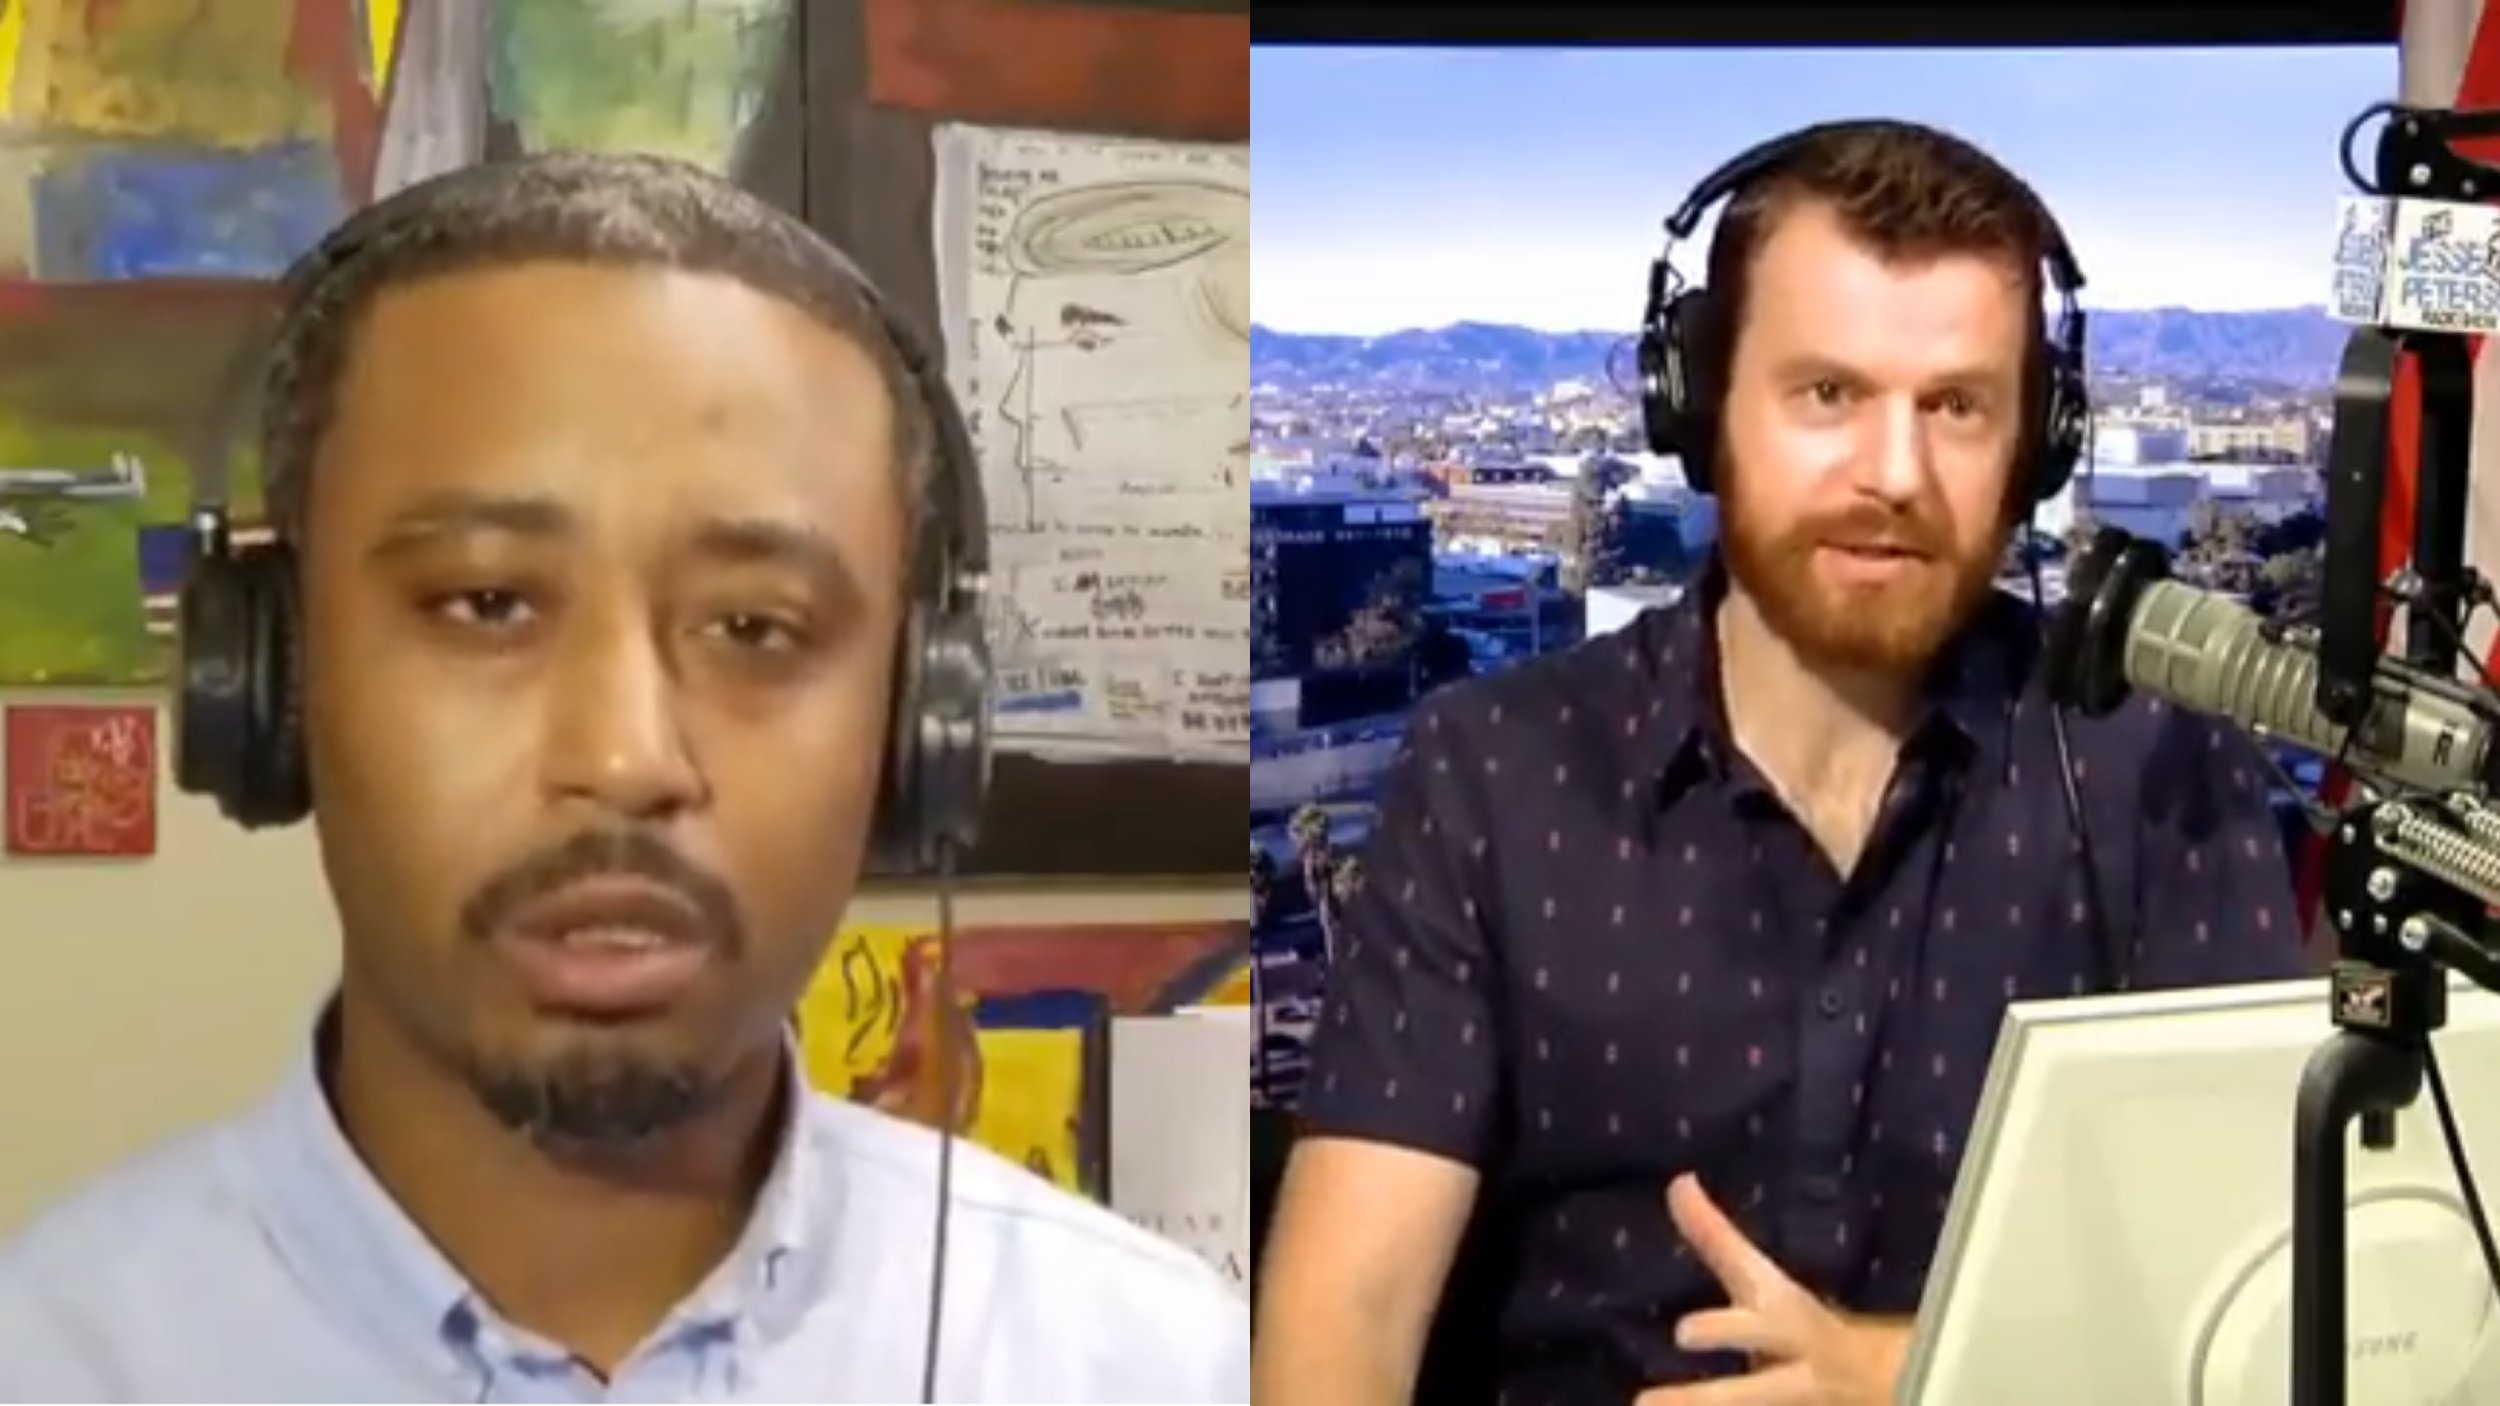 Toshon Jennings interviews James Anton Hake on the Truth, Values, & Character Show in July 2018.